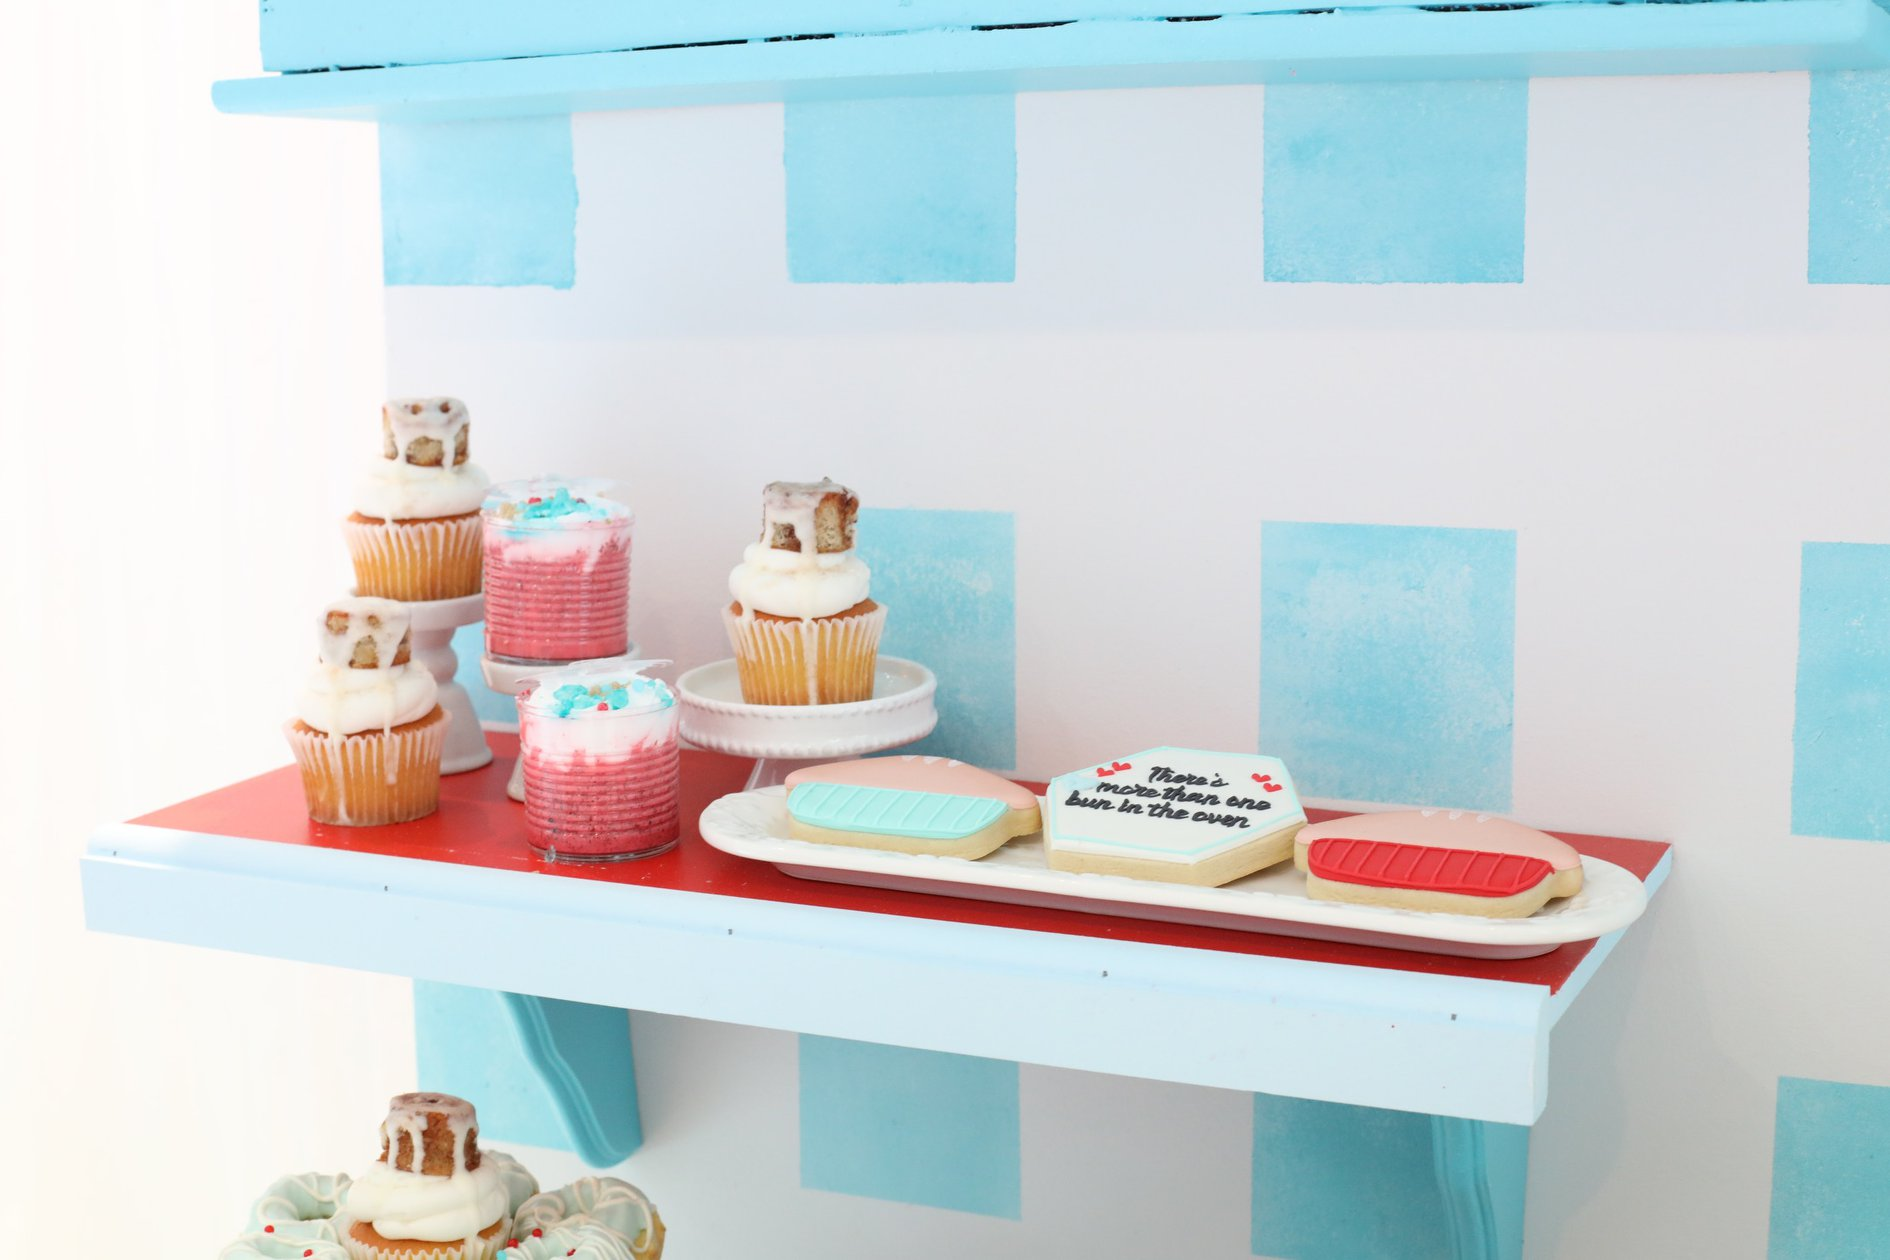 dessert shelf baby shower double the fun oven via kara's party ideas karaspartyideas.com